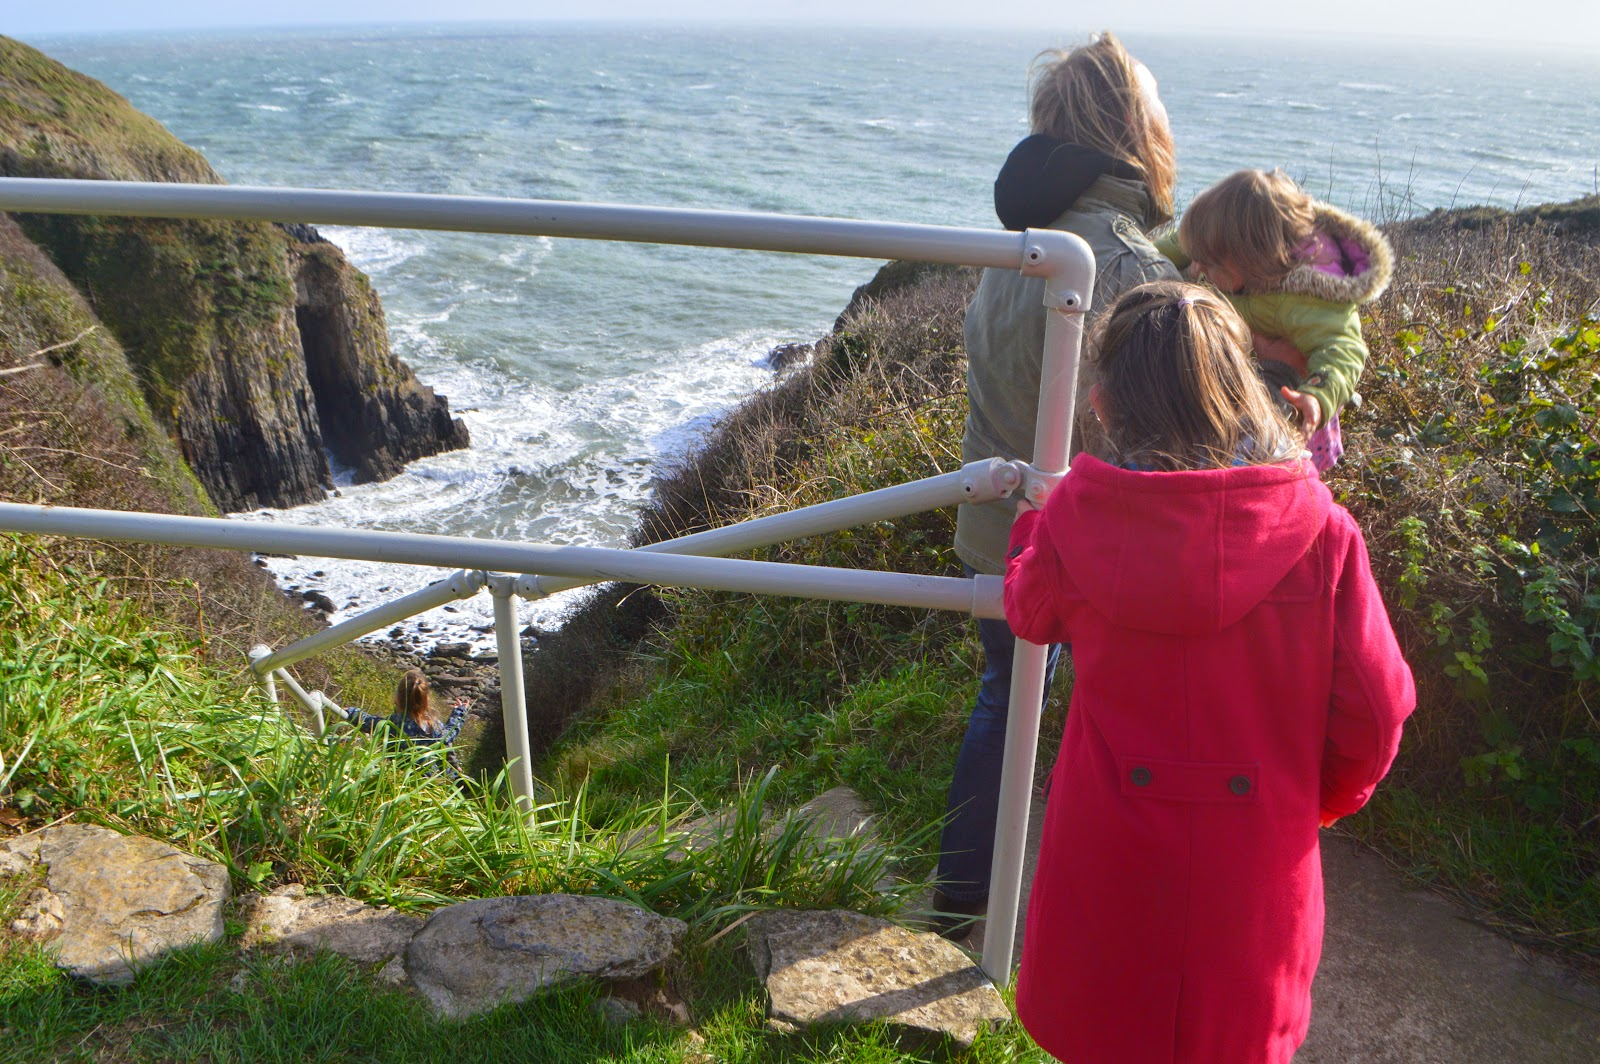 , Church Doors Cove, Pembrokeshire and a Fear of Heights #countrykids